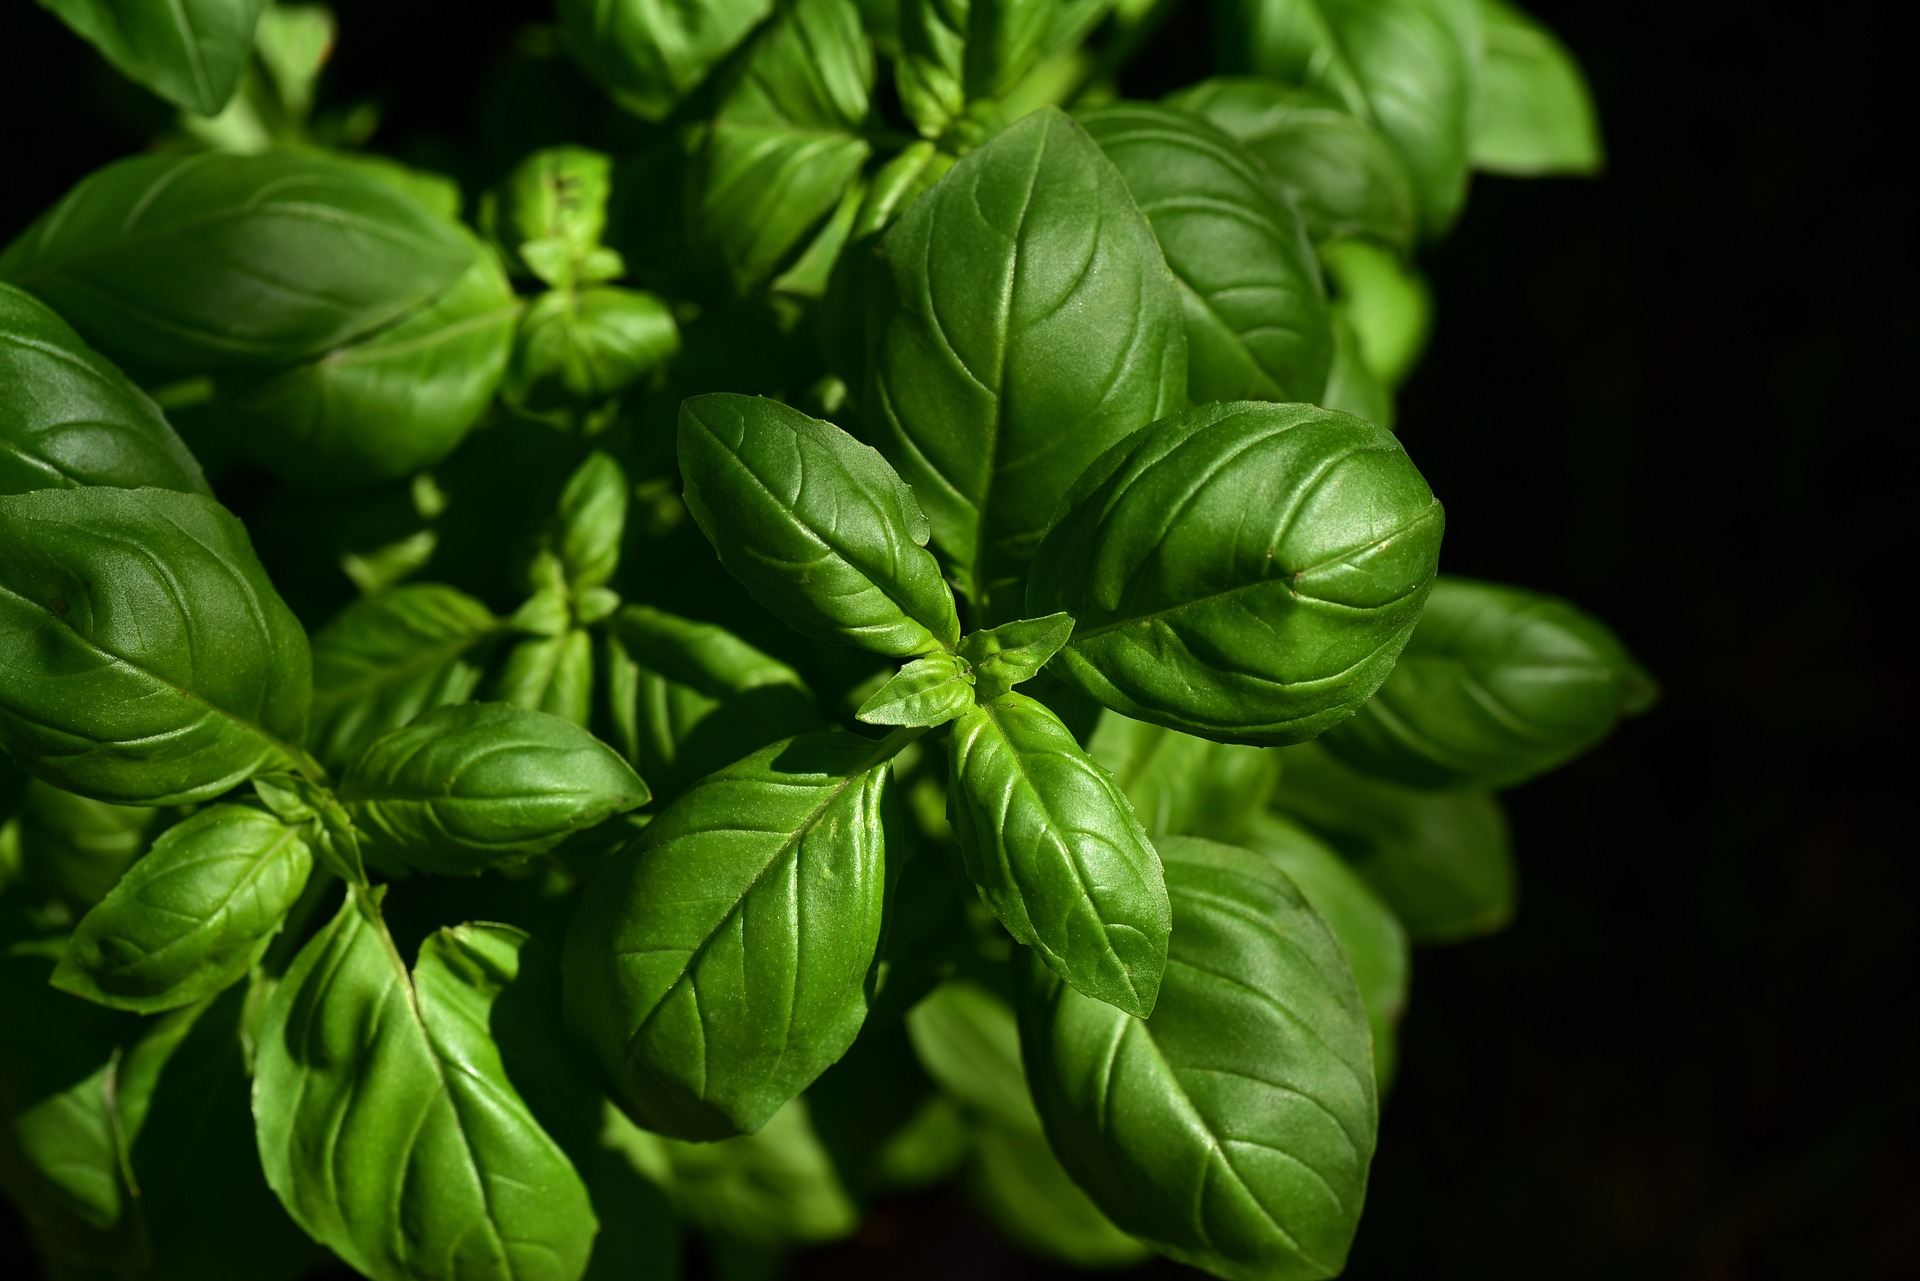 The easiest herbs and veggies to grow